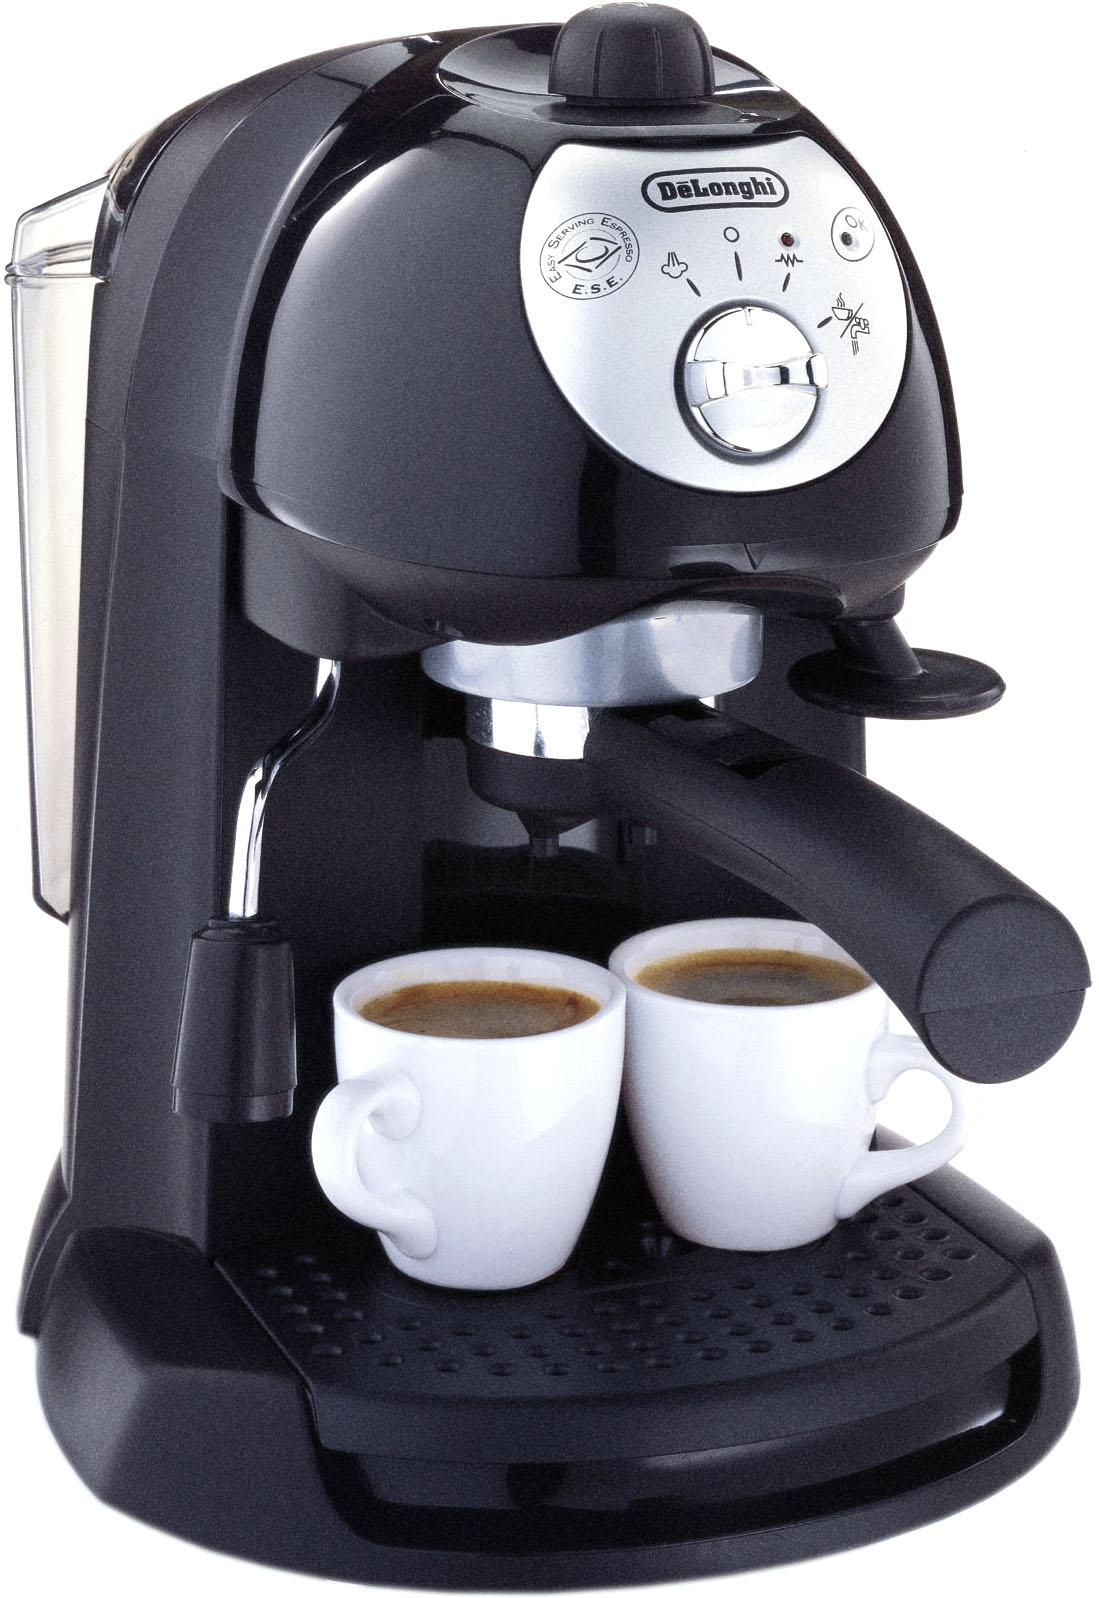 DeLonghi Black 15 Bar Pump Espresso Maker